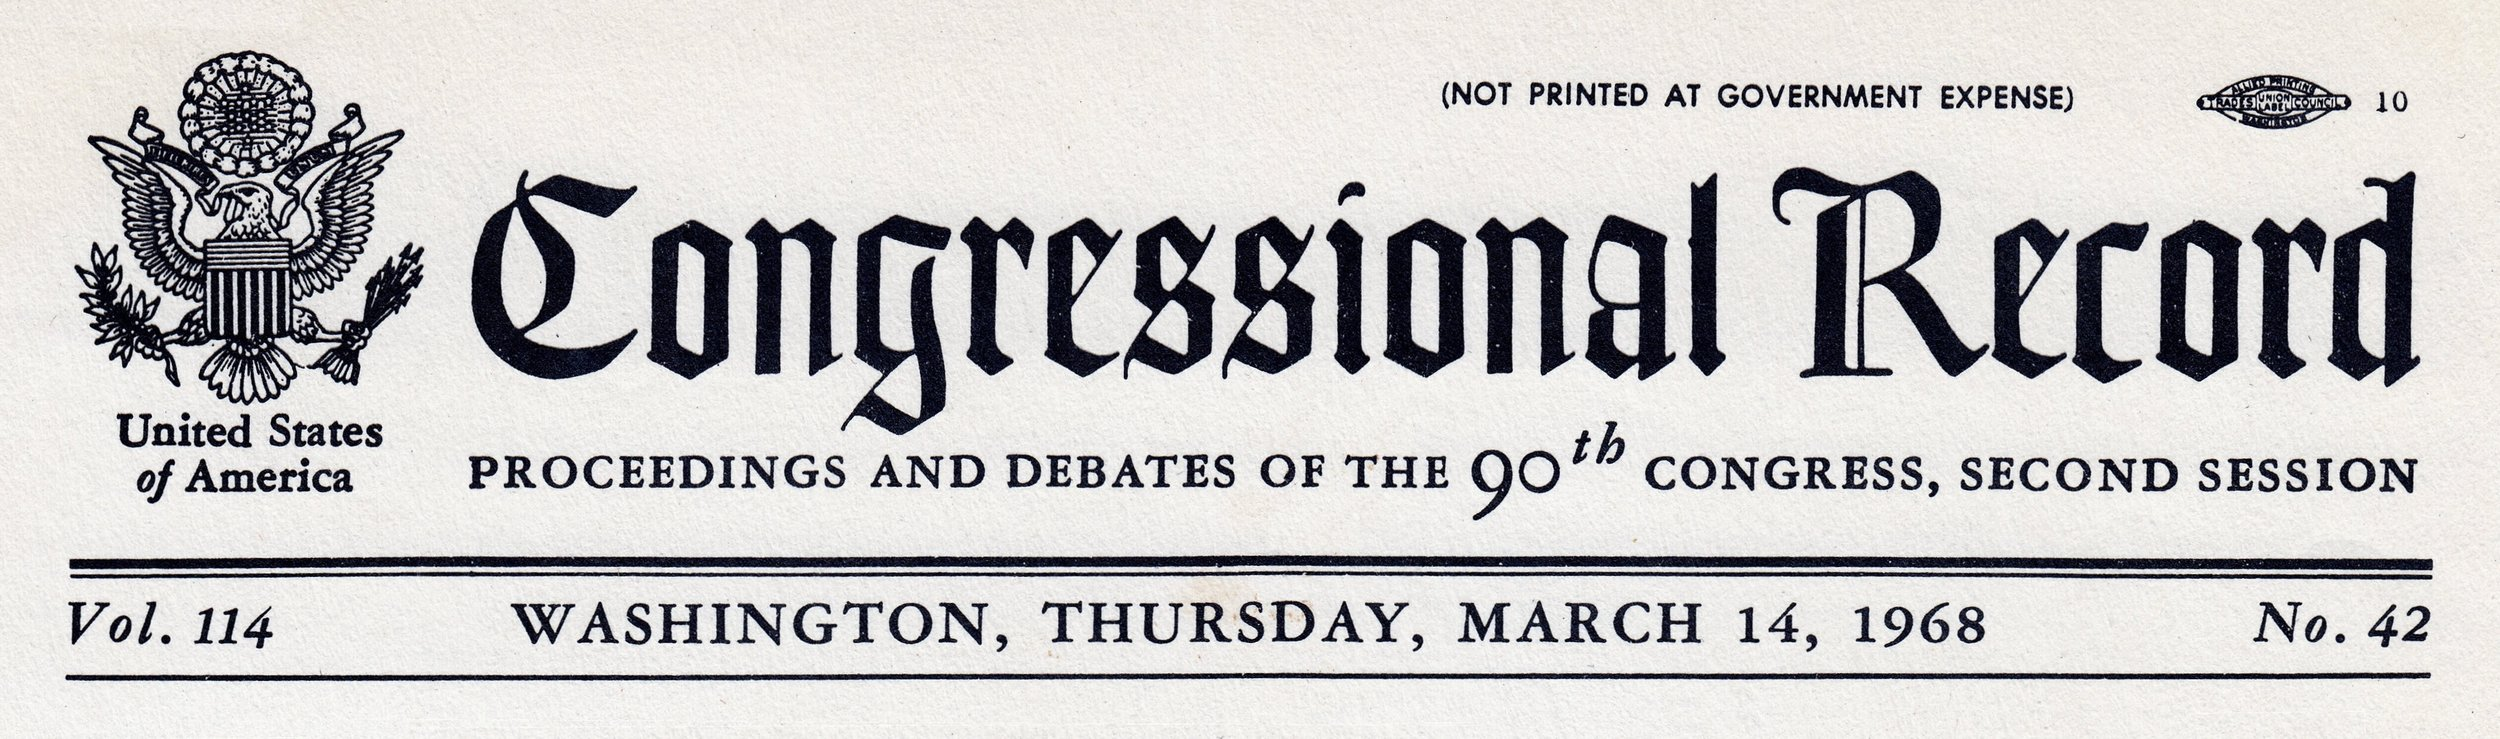 Congressional Record 1968 header only.jpg